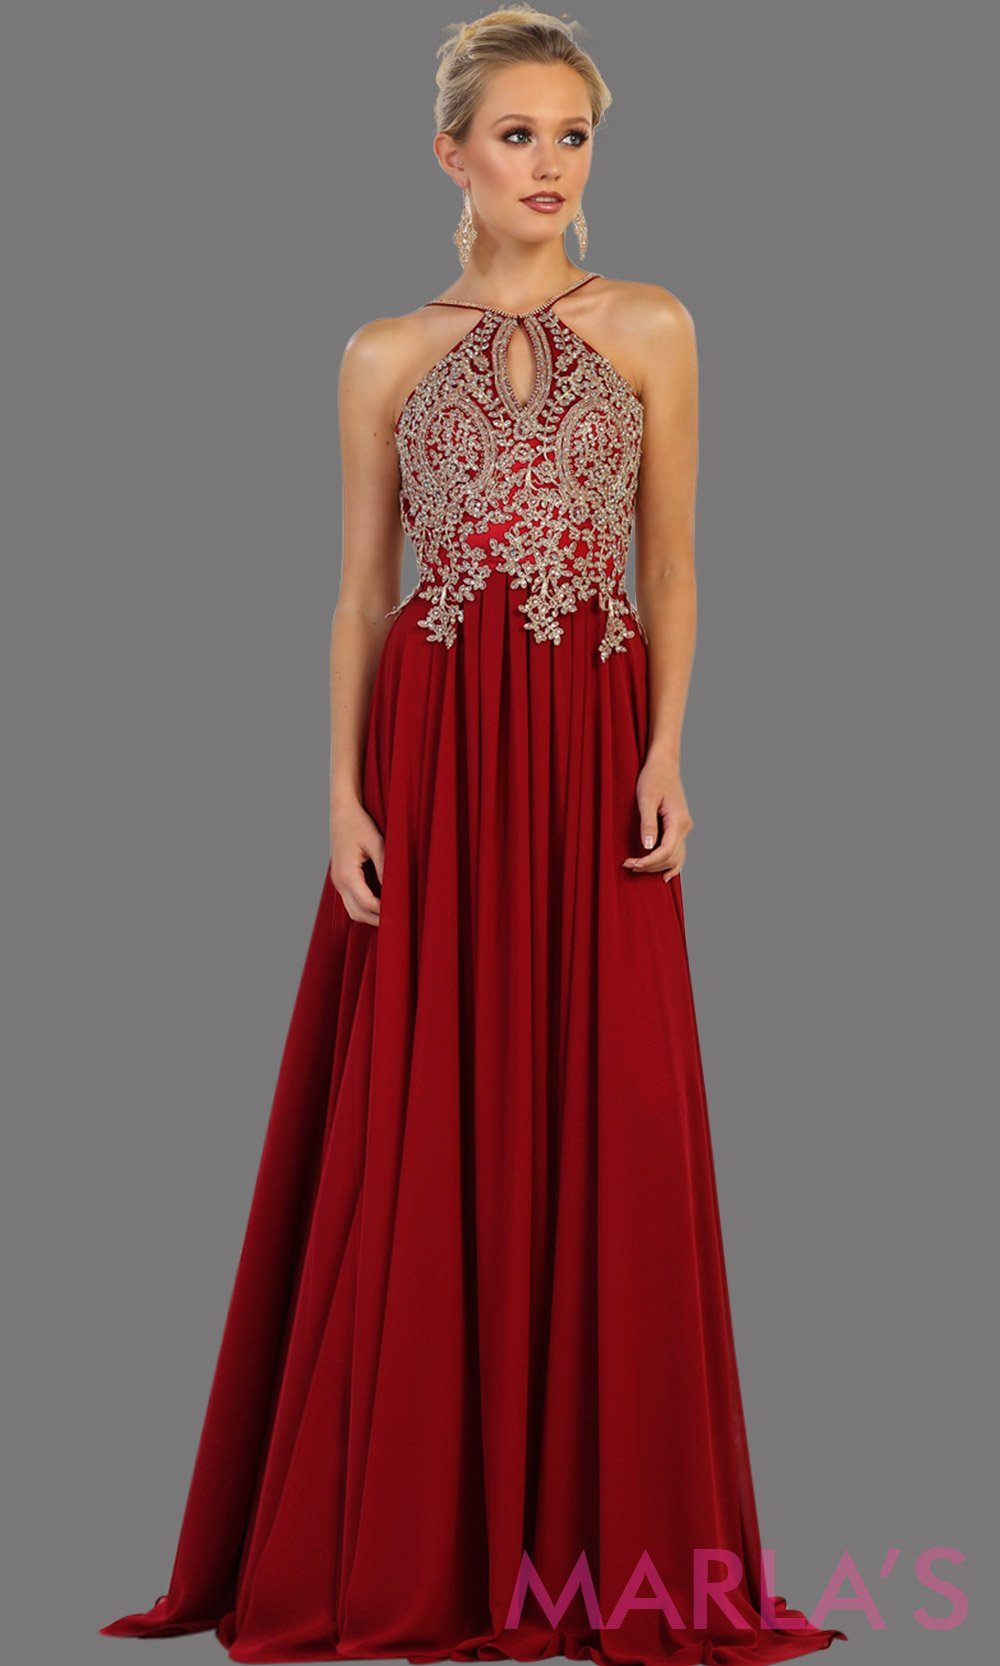 Long red flowy dress with gold lace. This high neck gown has a low illusion back. Perfect for prom, gala, formal wedding guest dress, long party gown. Red western dress. Available in plus sizes.